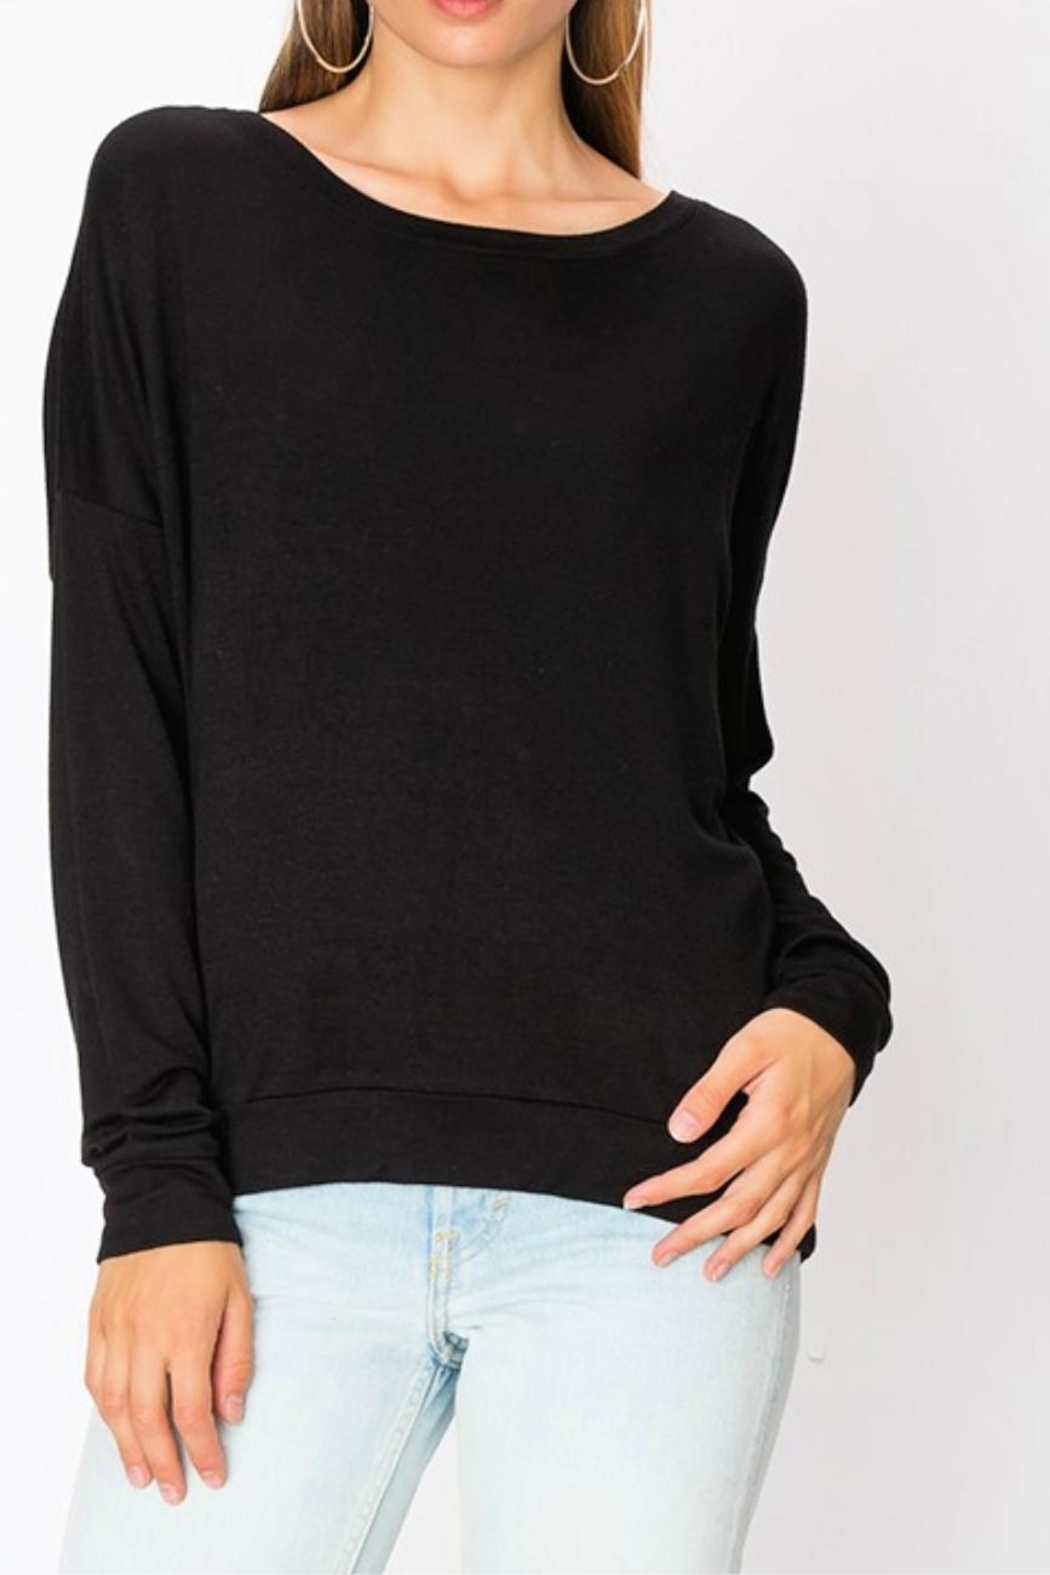 Miss Darlin Fleece Boatneck Sweatshirt - Main Image